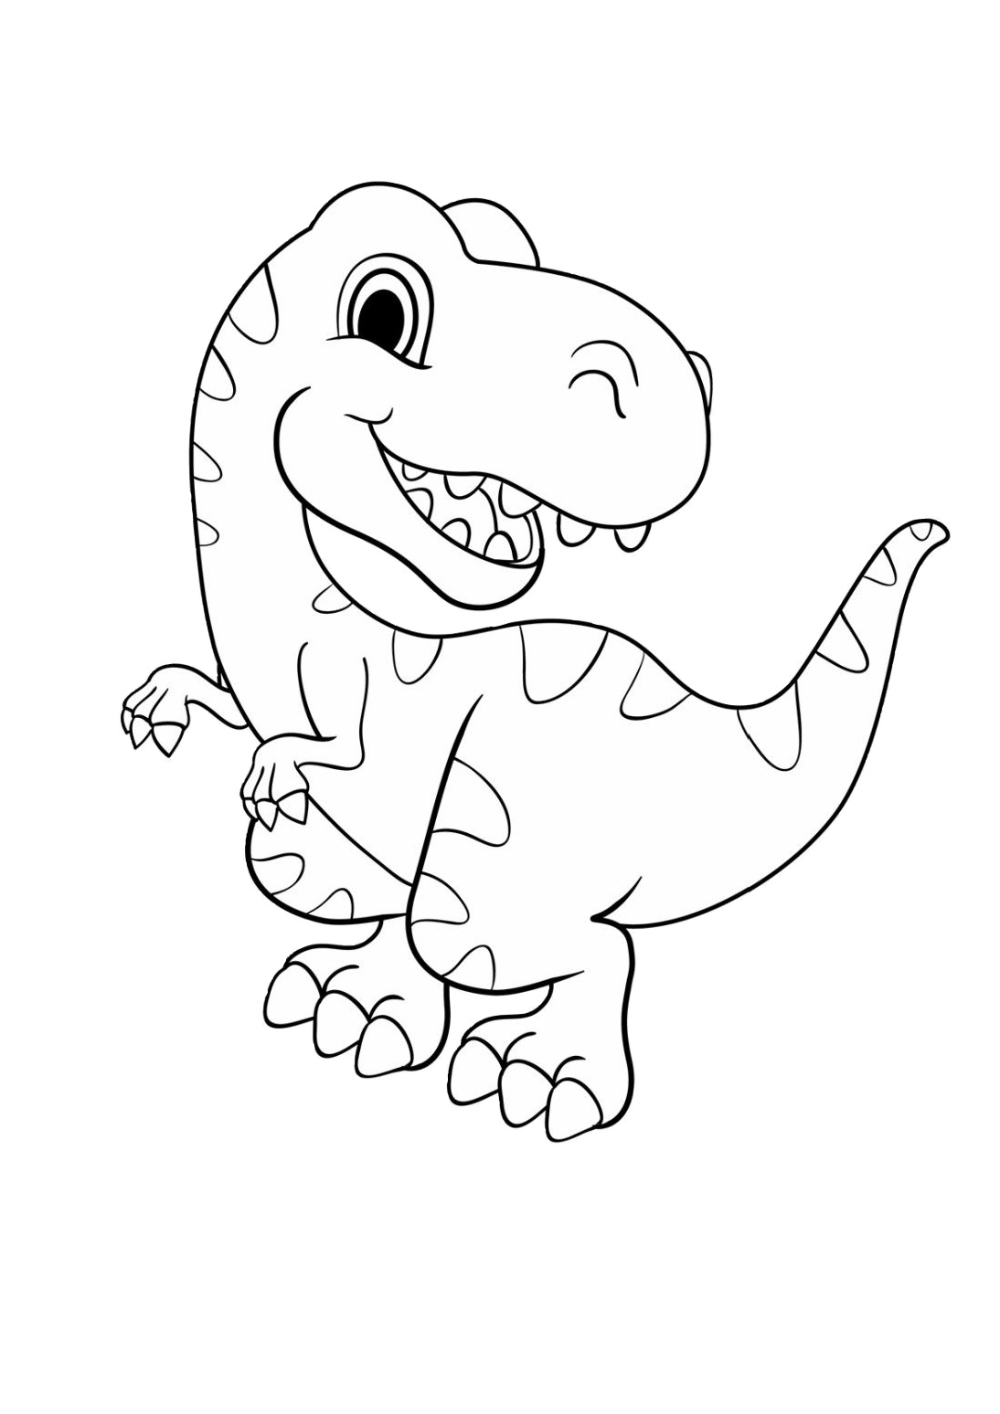 hard dinosaur coloring pages 42 breathtaking dinosaur coloring pages pdf conexionunder dinosaur coloring hard pages